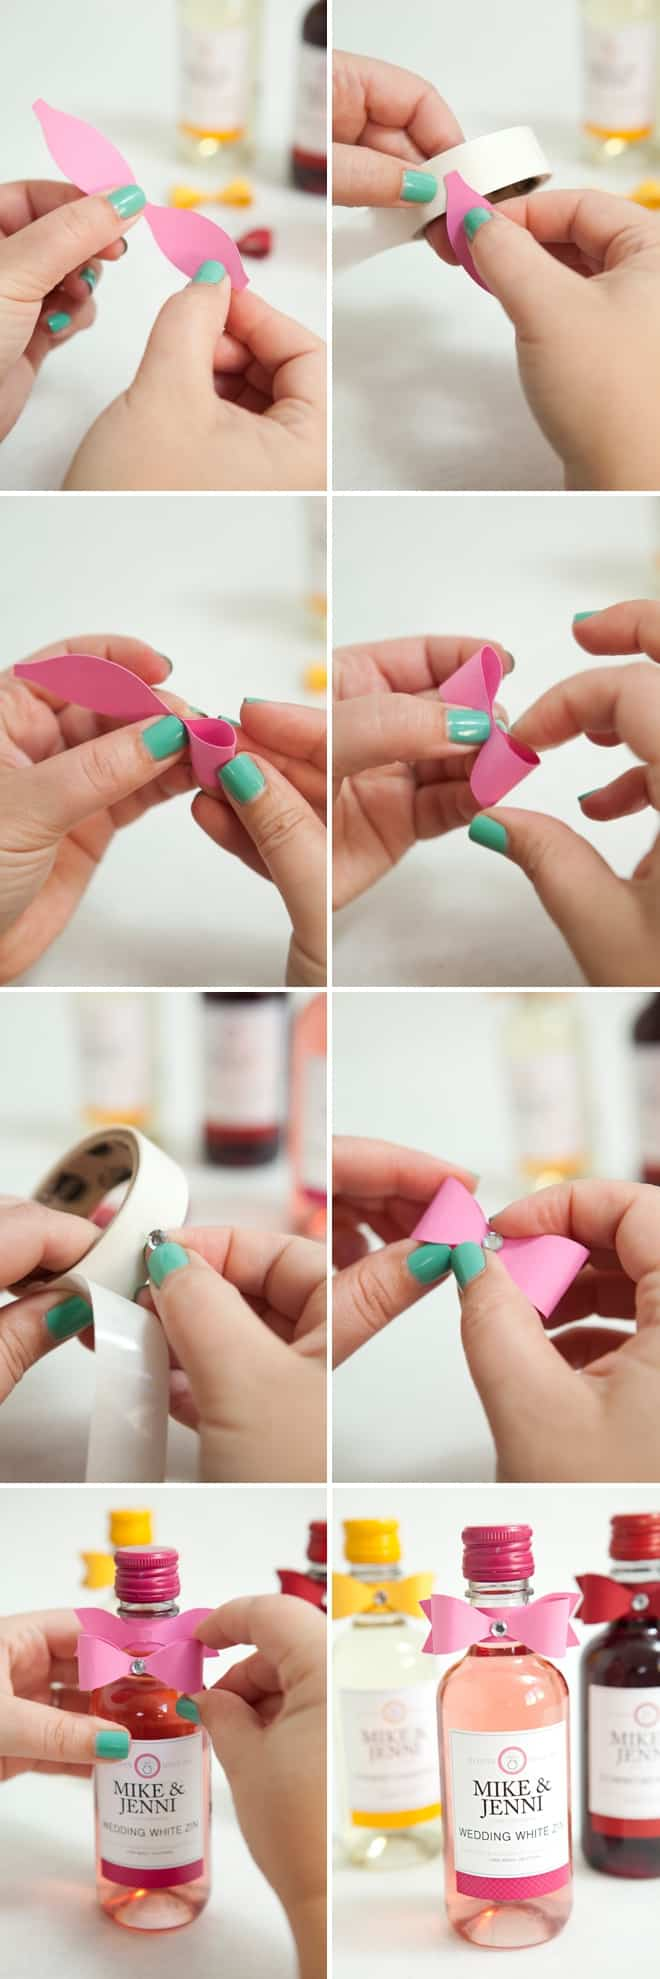 DIY-Mini-Wine-Bottle-Favors_0016